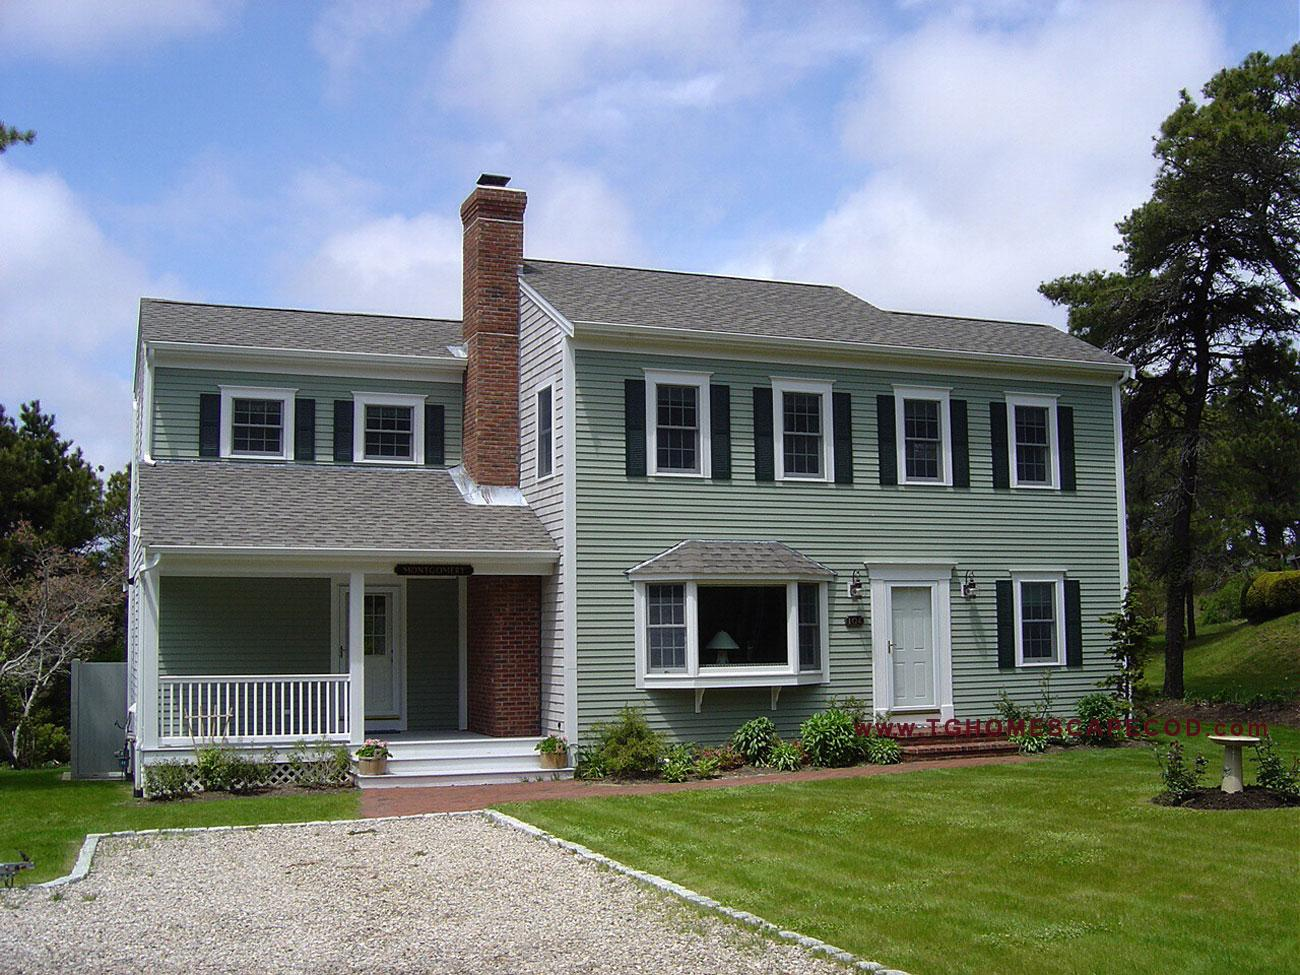 Tg Homes Cape Cod Home Design Build Services New